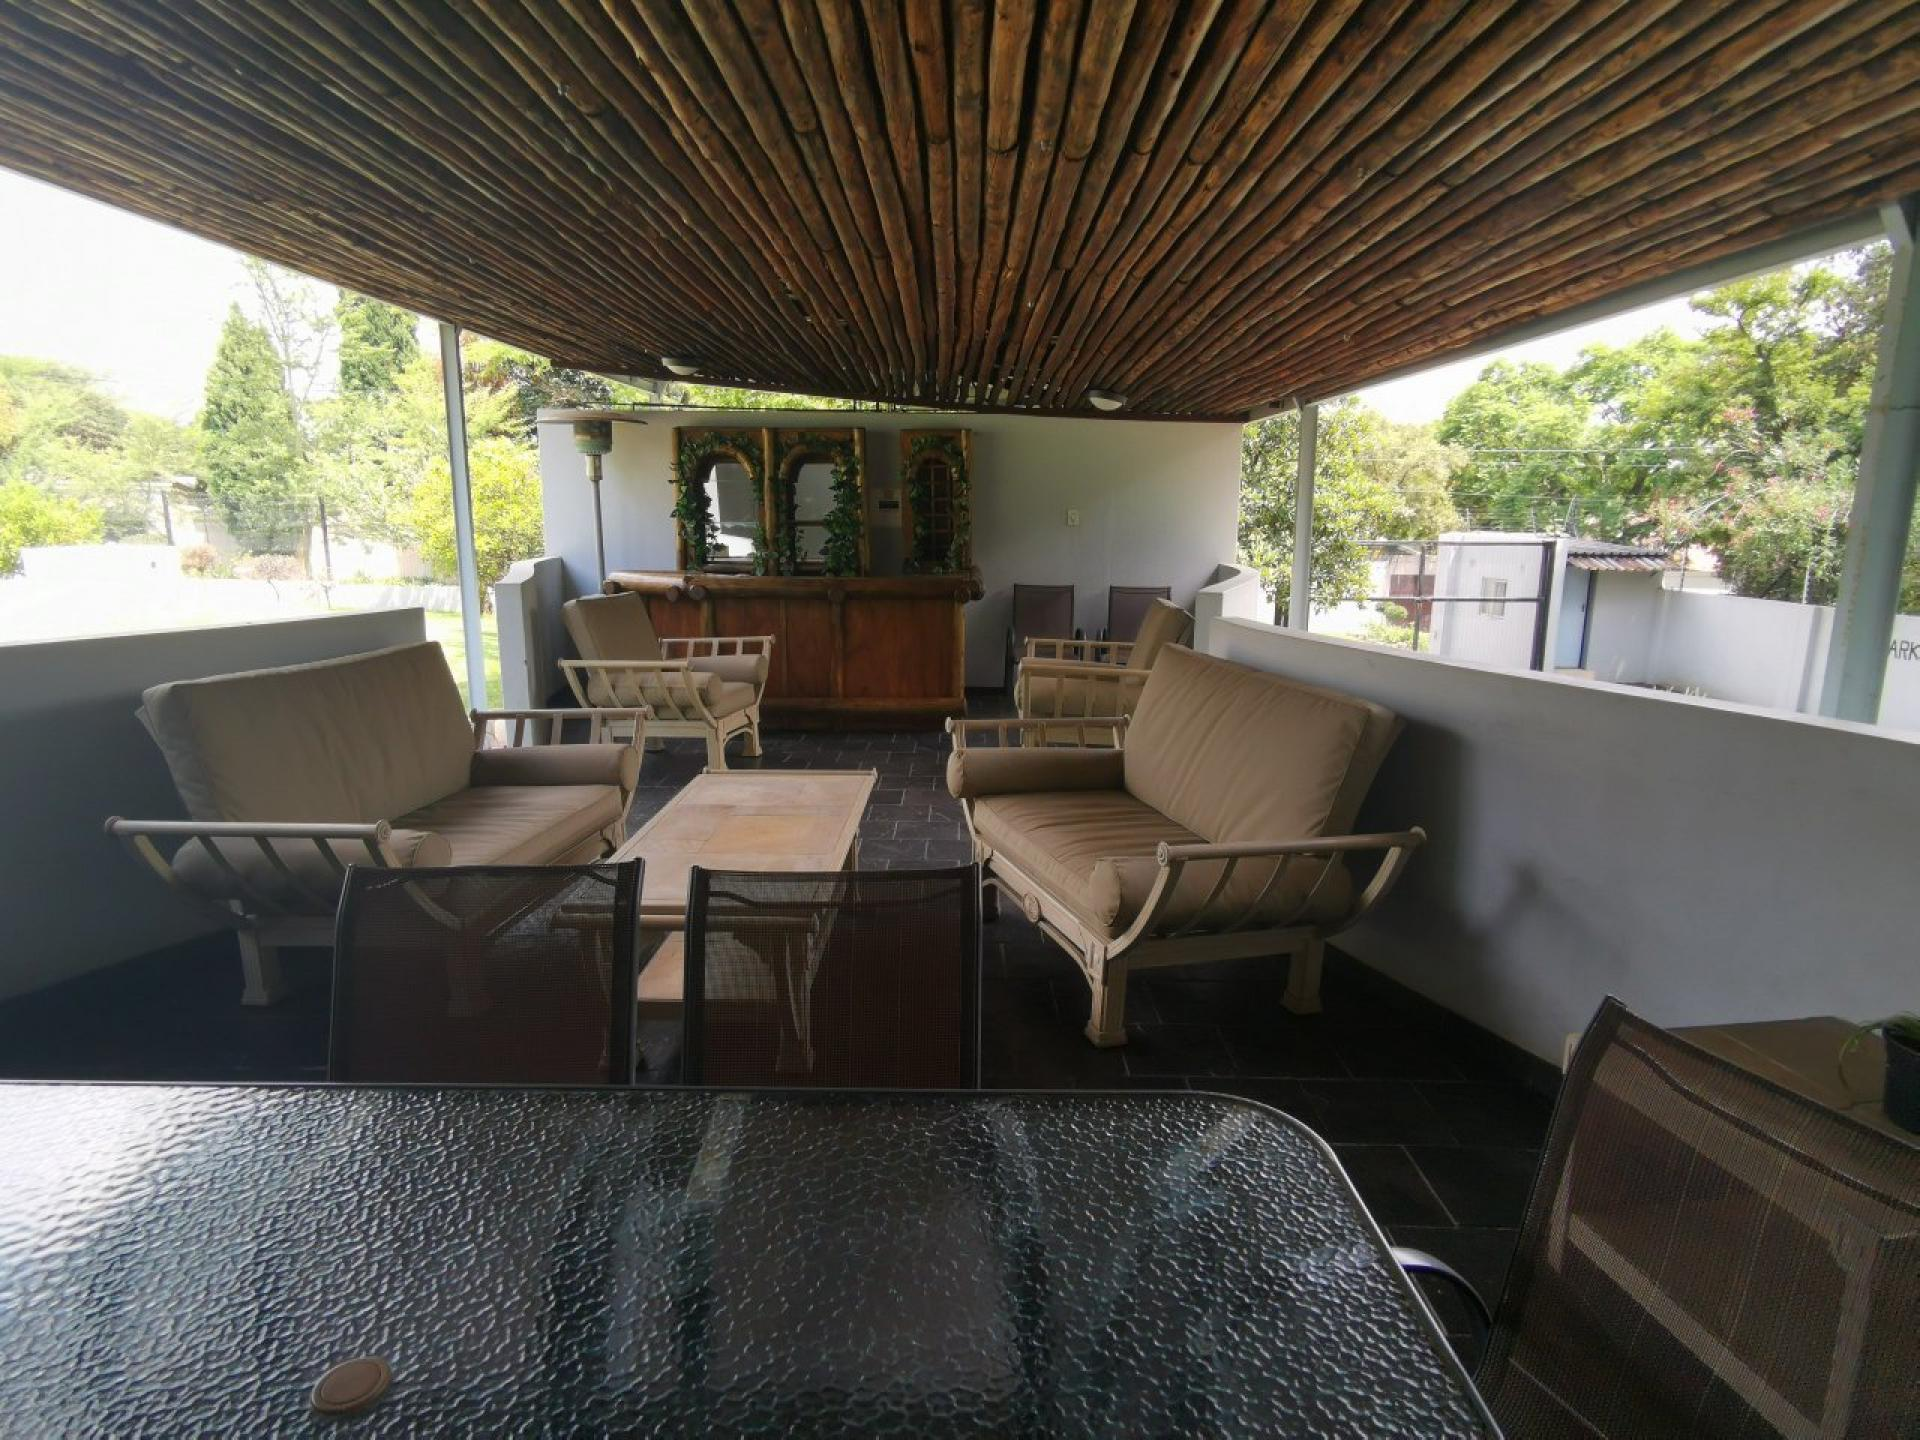 12 Bedroom House For Sale For Sale In Bryanston Mr366645